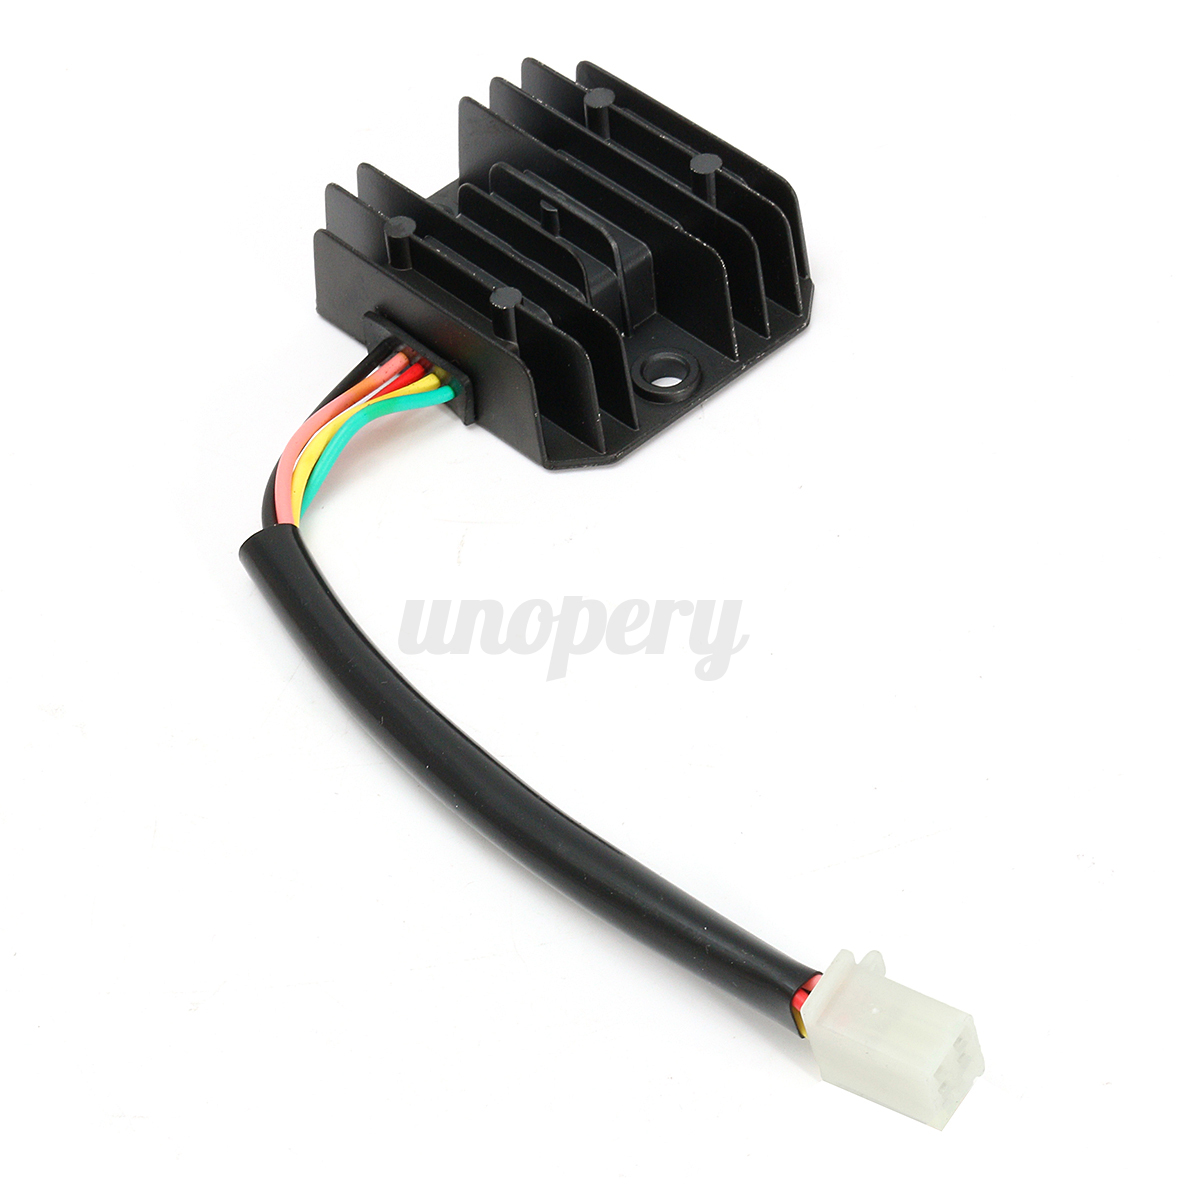 5 Wire Rectifier Wiring Electrical Diagrams 4 Atv Voltage Regulator Diagram Wires For Motorcycle 50cc 125cc Chinese Quad 6 Volt